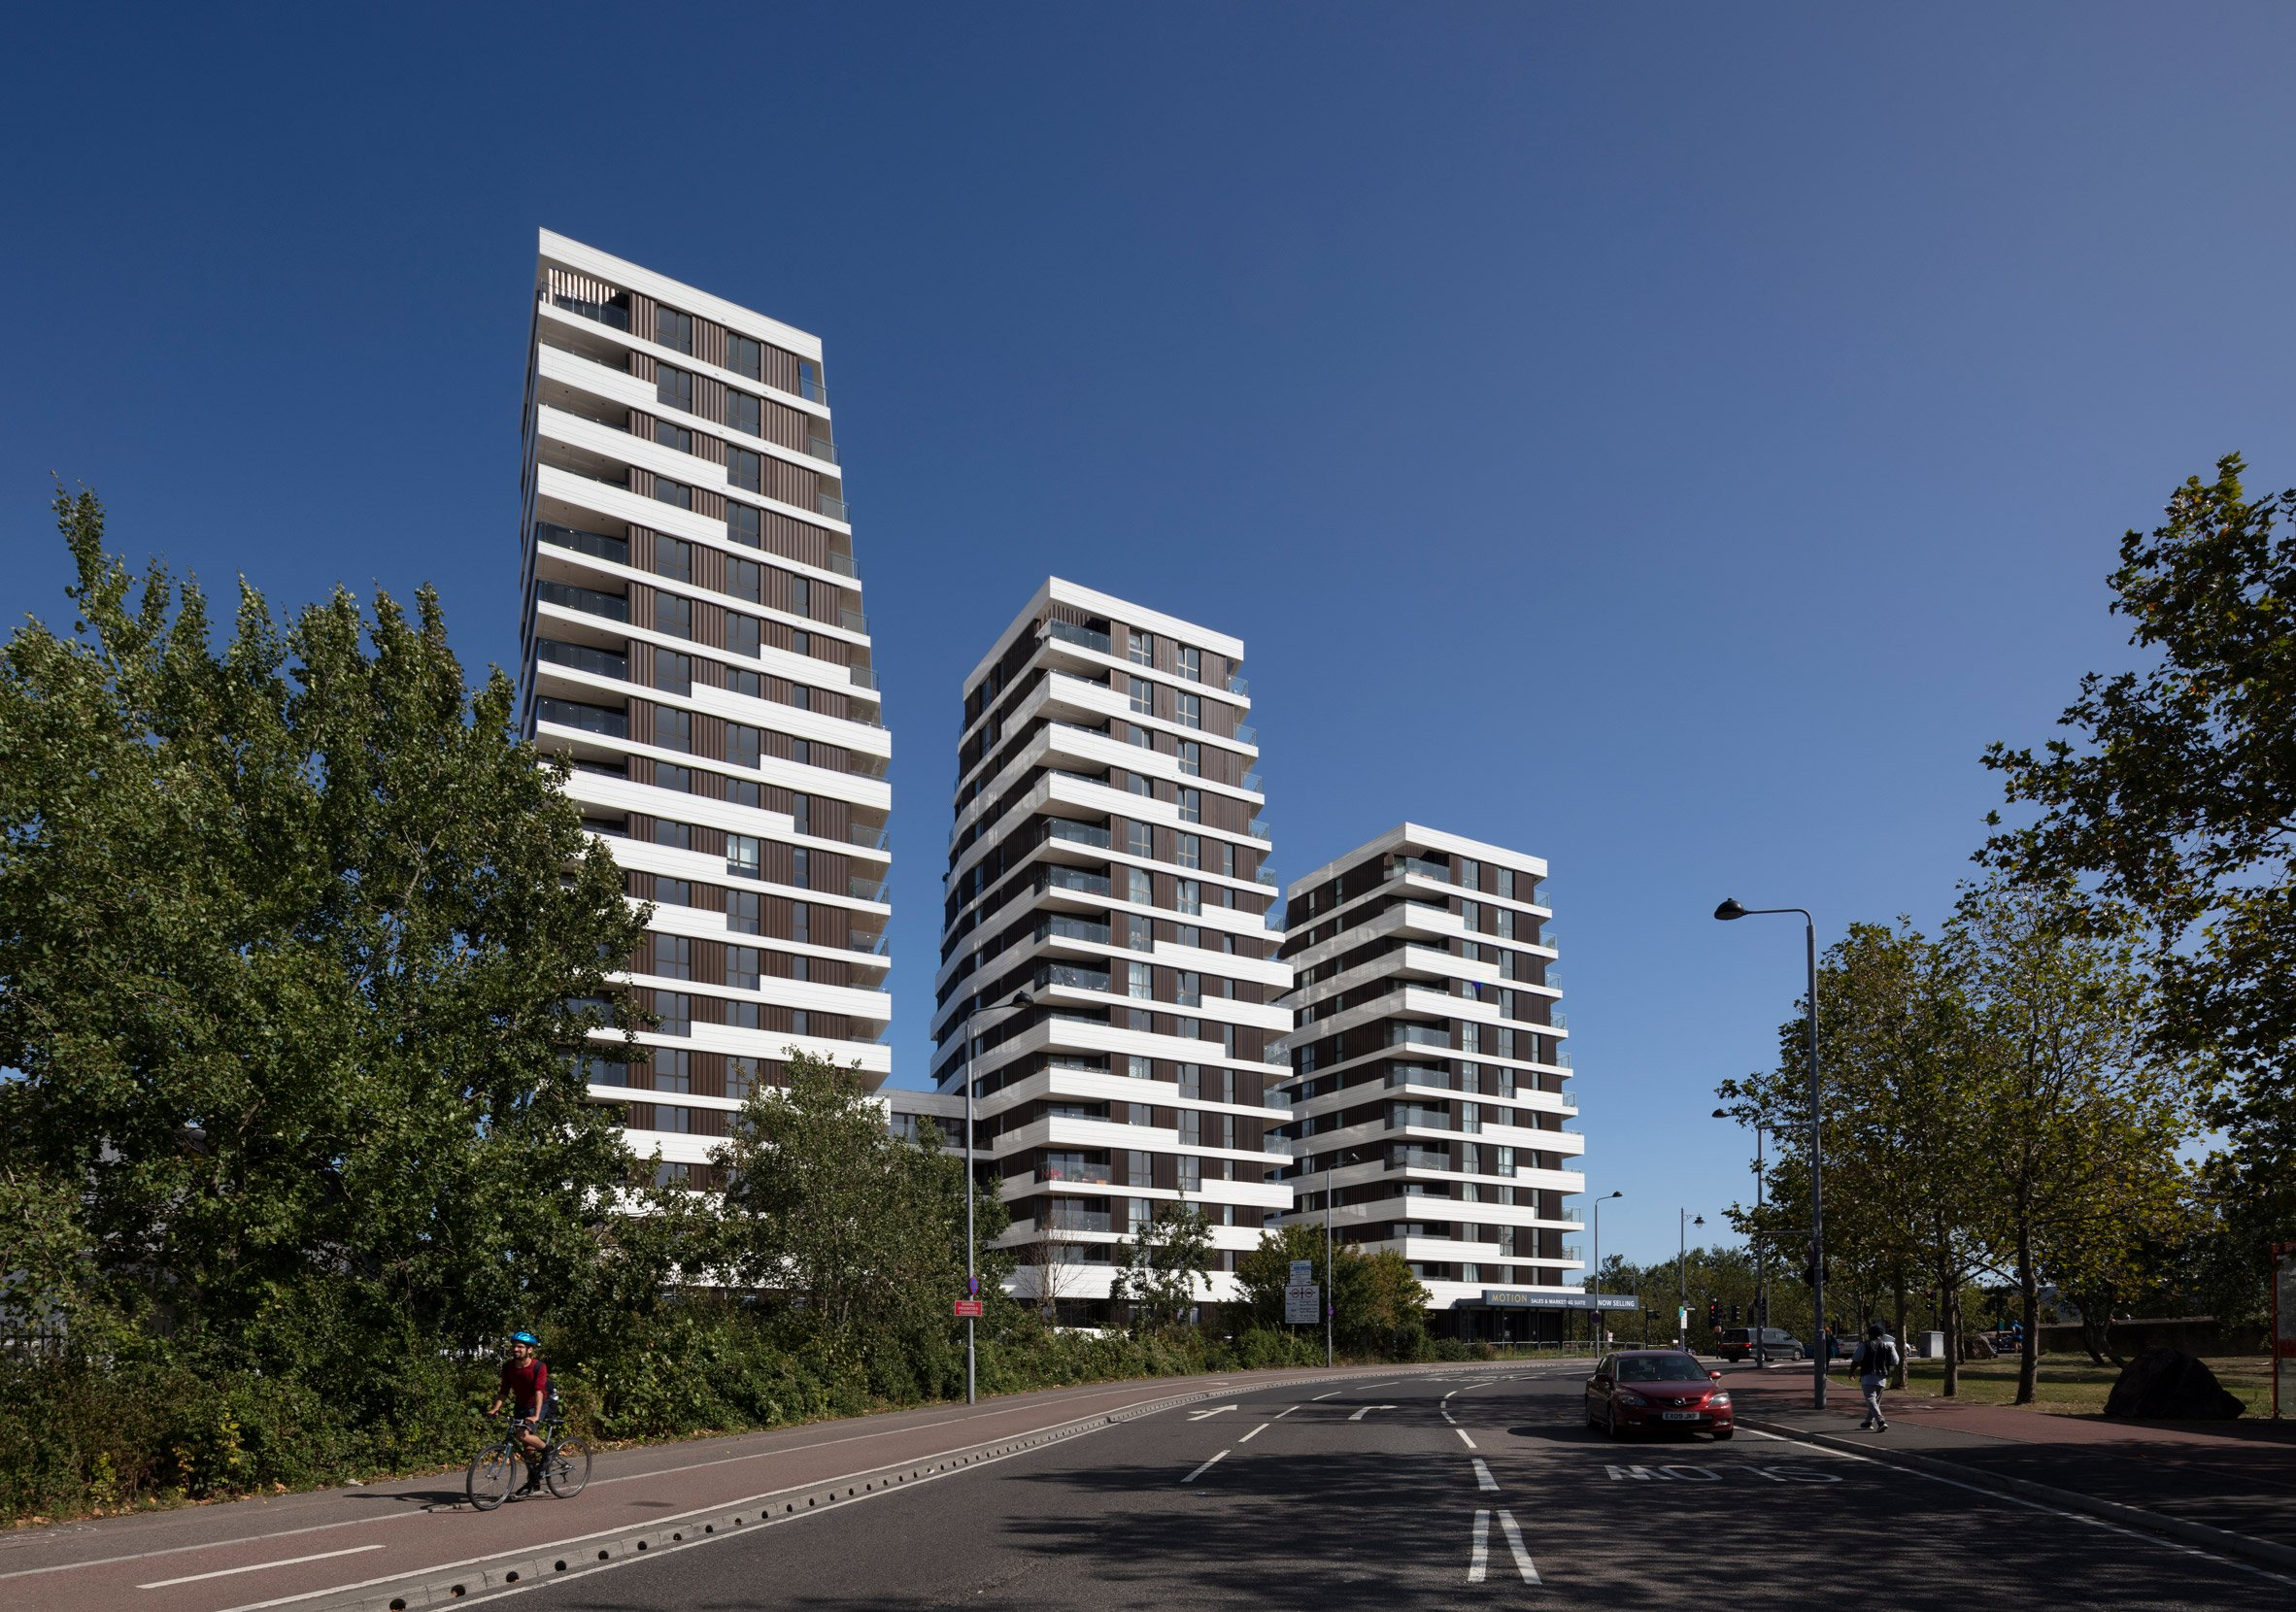 The three Motion towers in London by Pollard Thomas Edwards